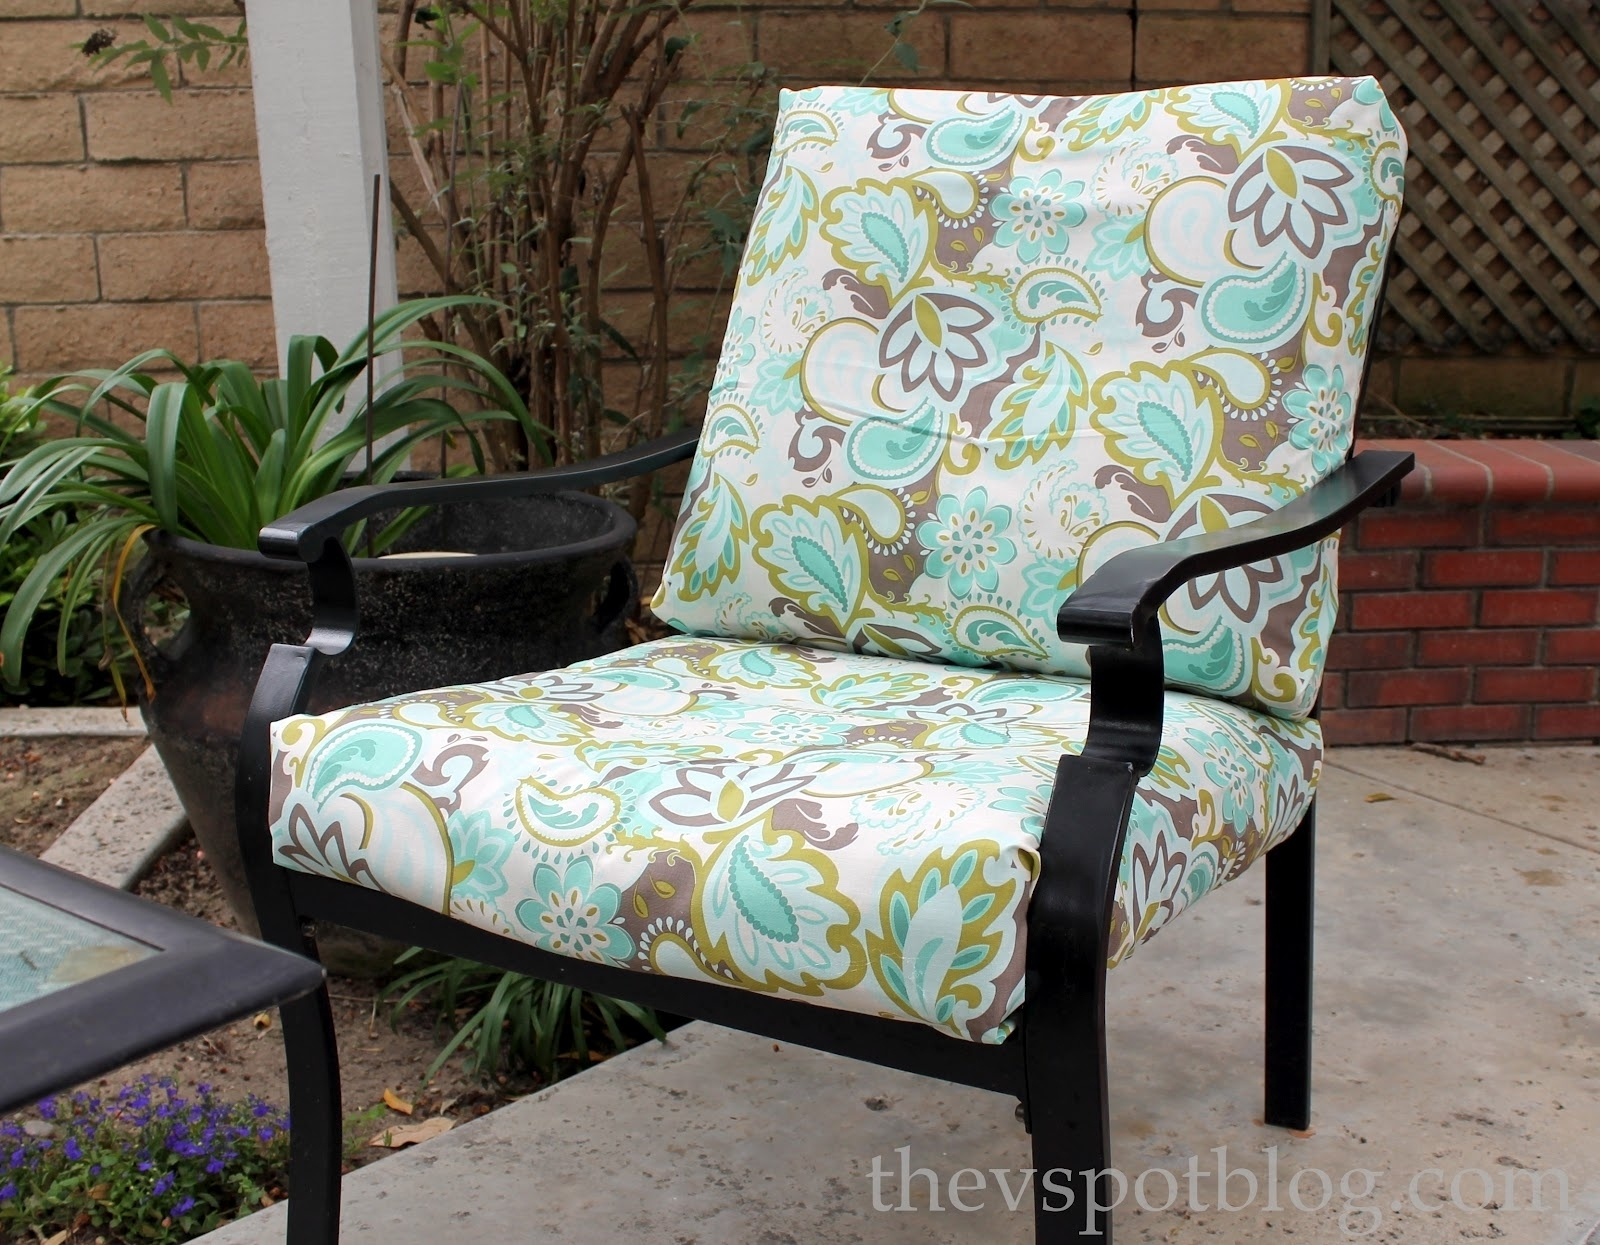 Outdoor Wicker Chair Cushions Modern Design Ideas Pertaining To Outdoor Wicker Furniture Cushions Warmth Outdoor Wicker Furniture Cushions